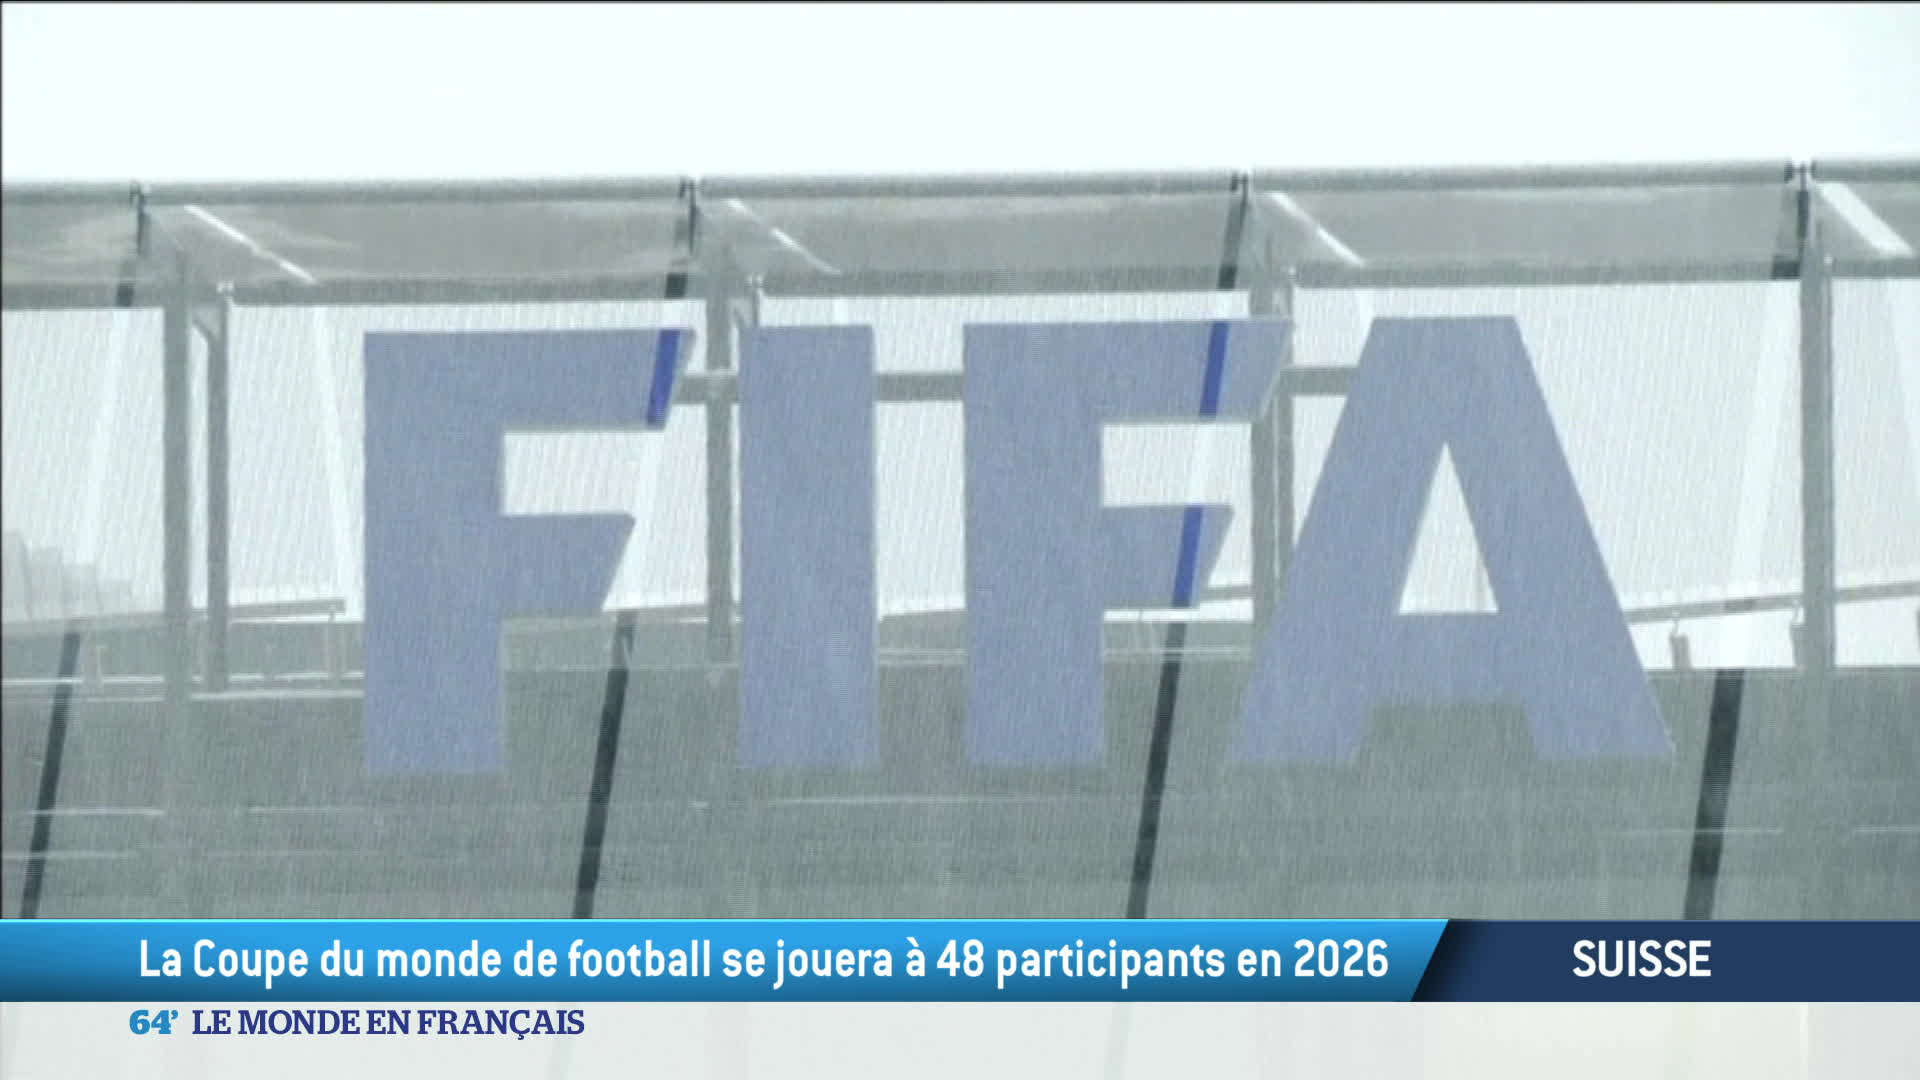 Plus de pays à la Coupe du monde de football 2026